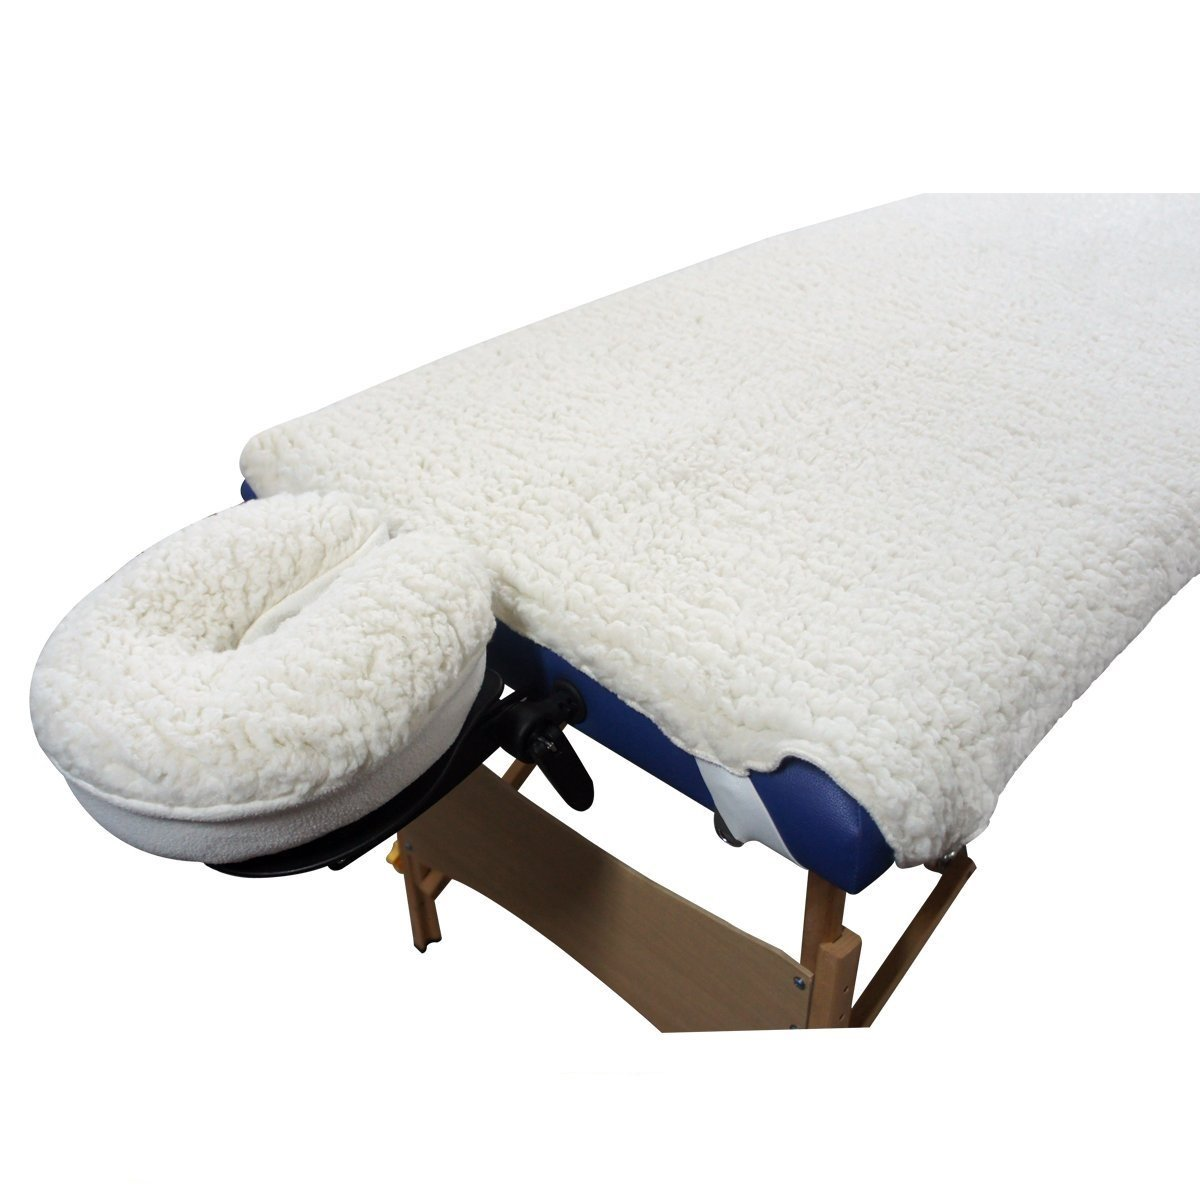 TOA Supply New Deluxe EarthGear Massage Table Sheet Fleece Cover & Face Rest Pad Set by TOA Supply